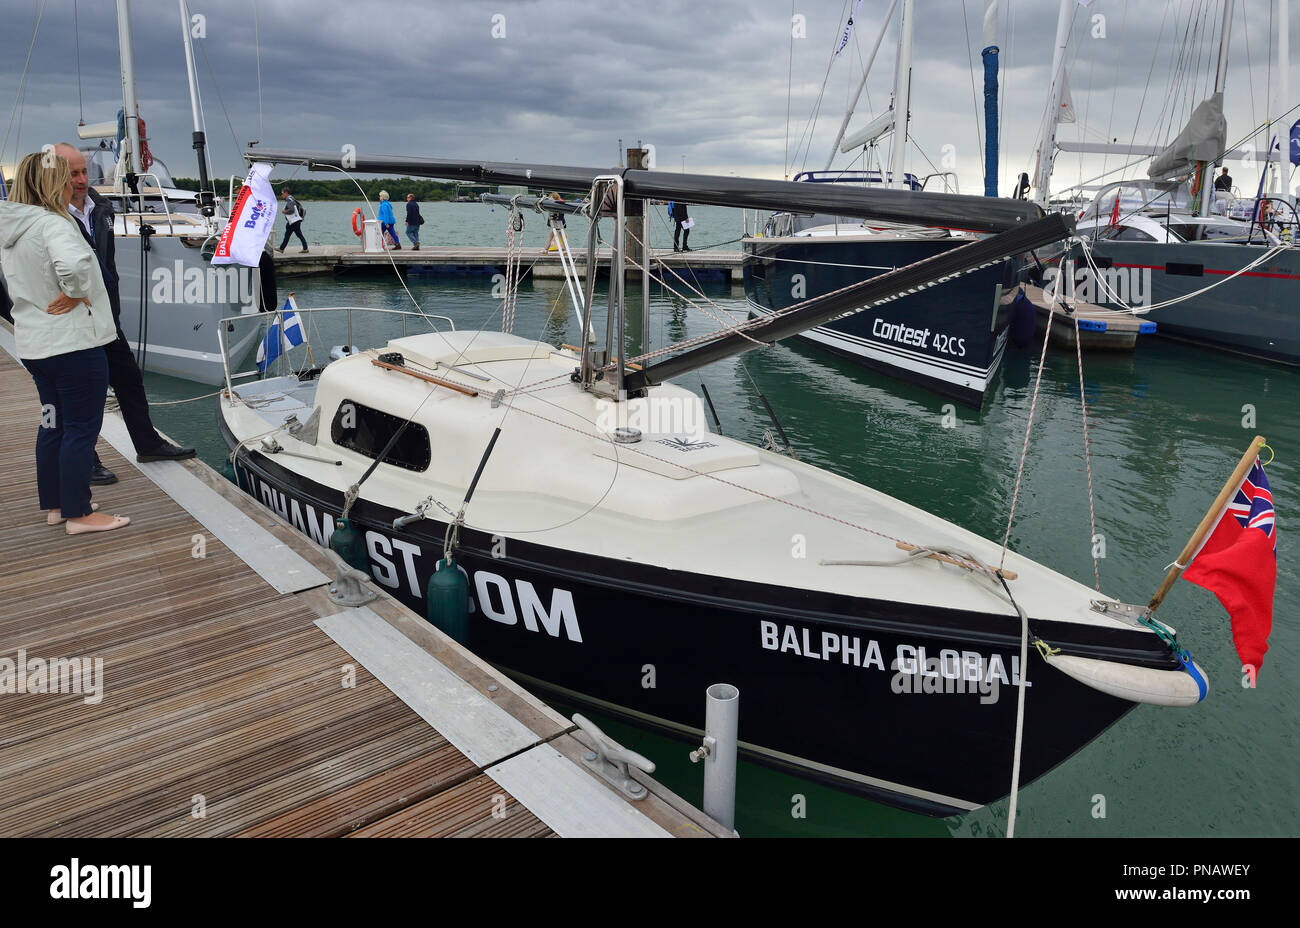 Balpha Global at the Southampton Boat Show 2018 with its Balpha Mast foldable mast system for yachts which allows for easy lowering & raising of masts - Stock Image